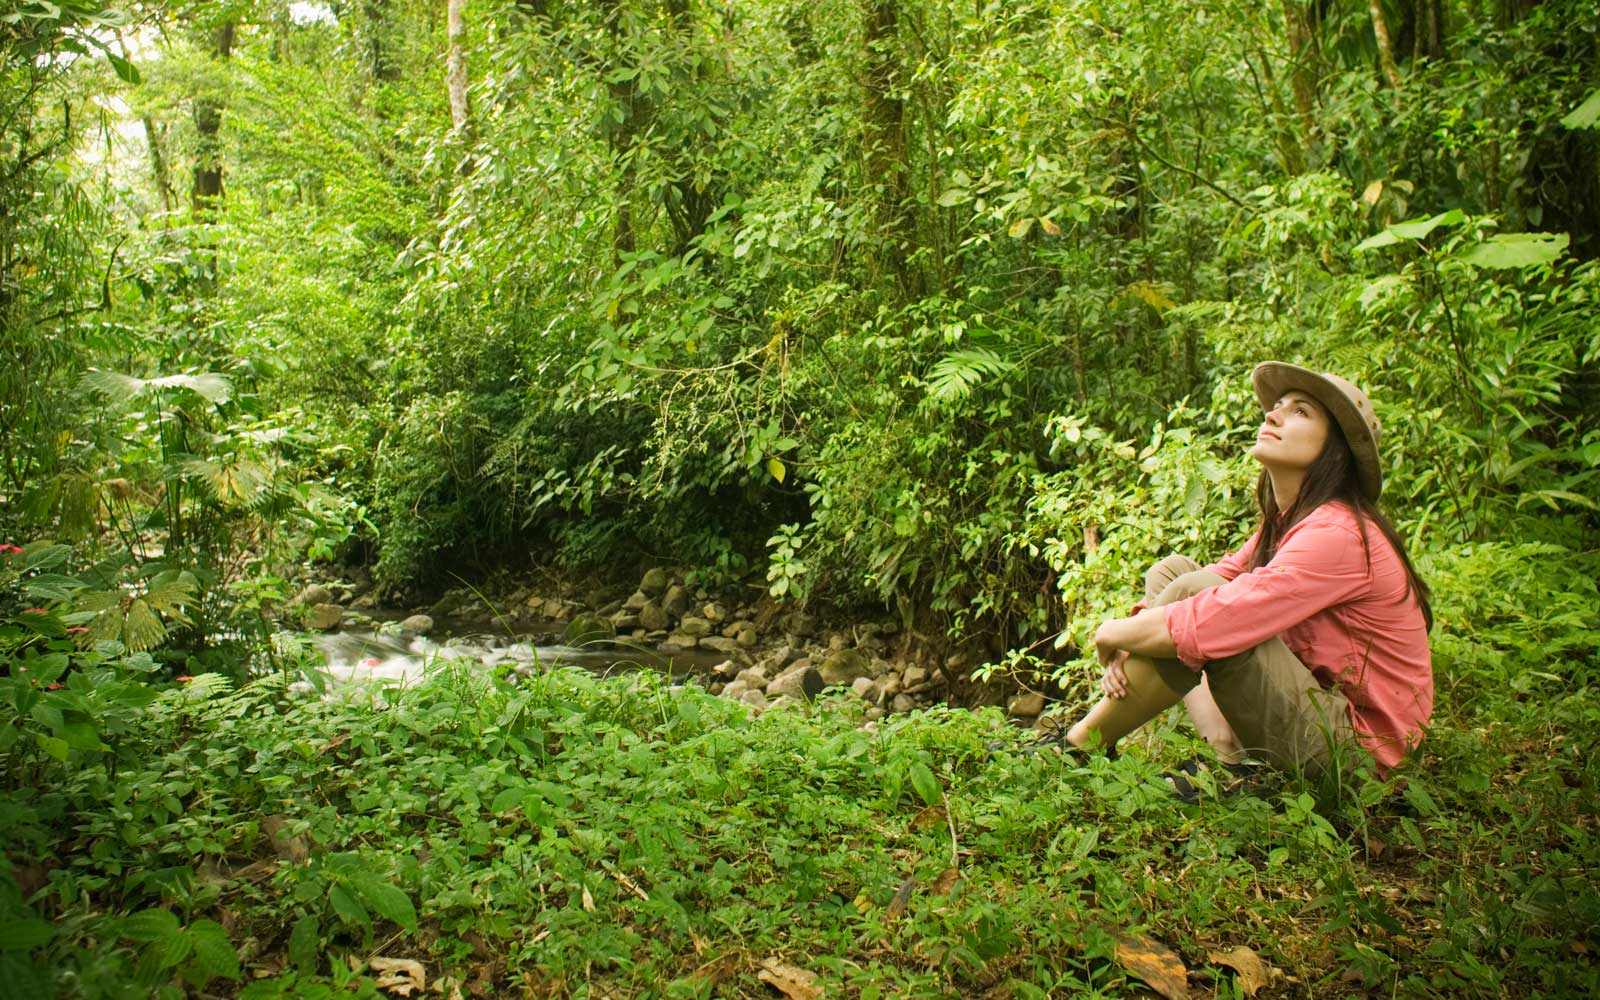 Women who spend time in nature live longer, study finds